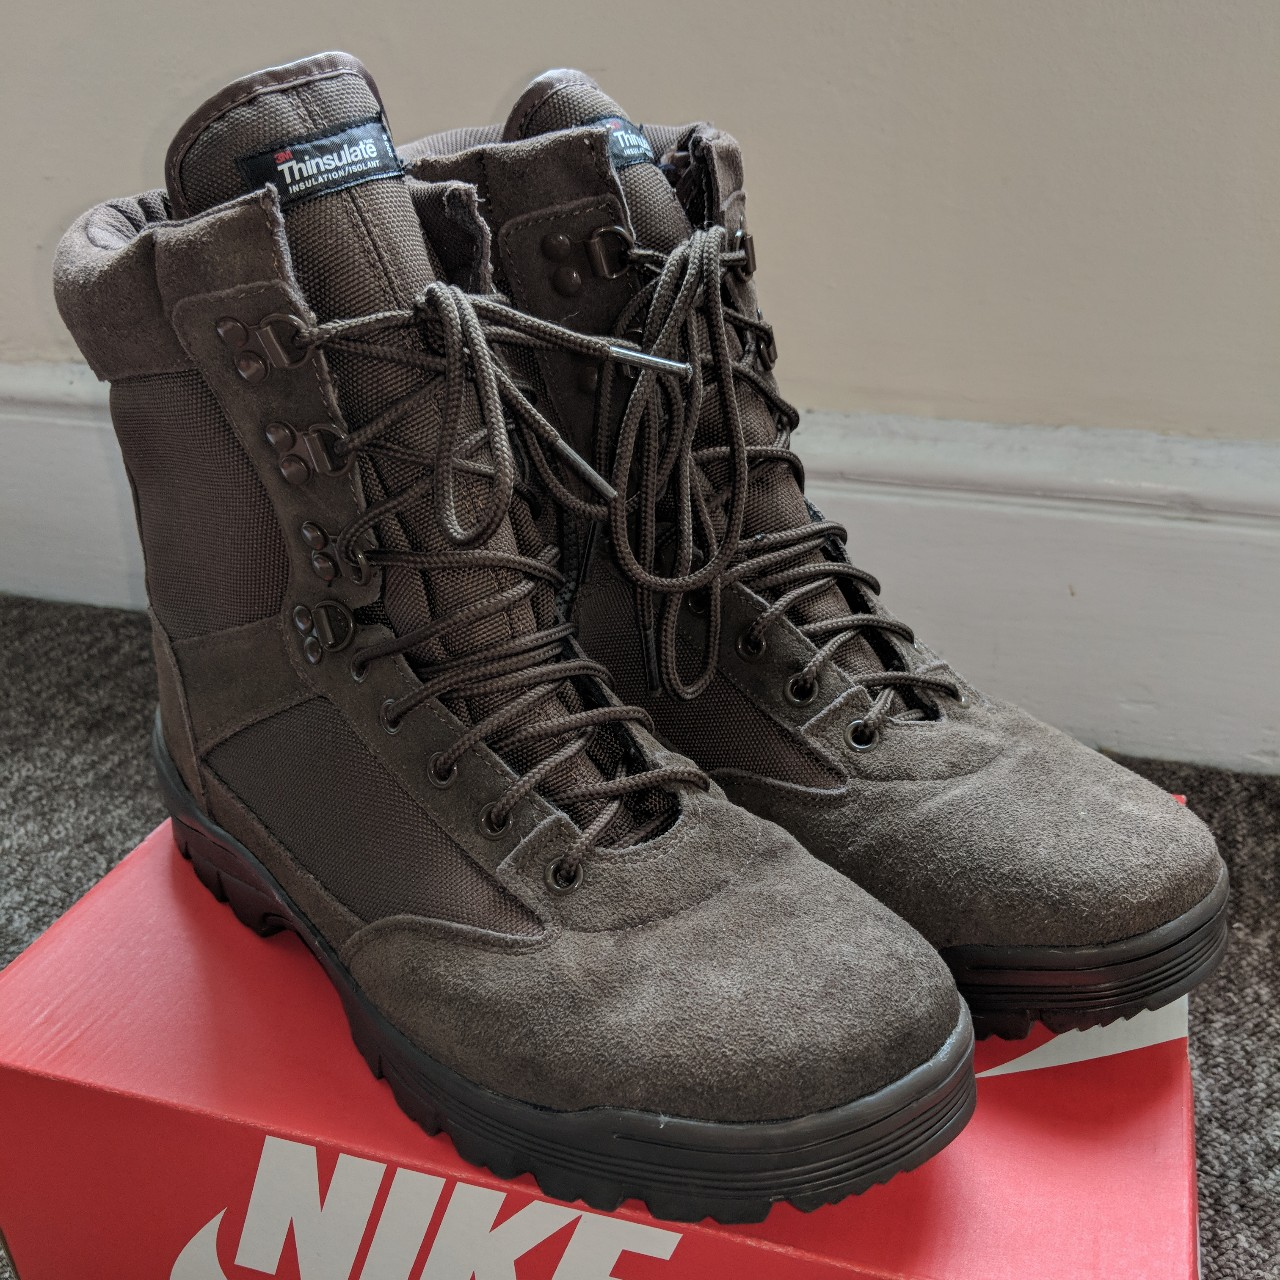 3M #Thinsulate insulation #military shoes/boots in    - Depop